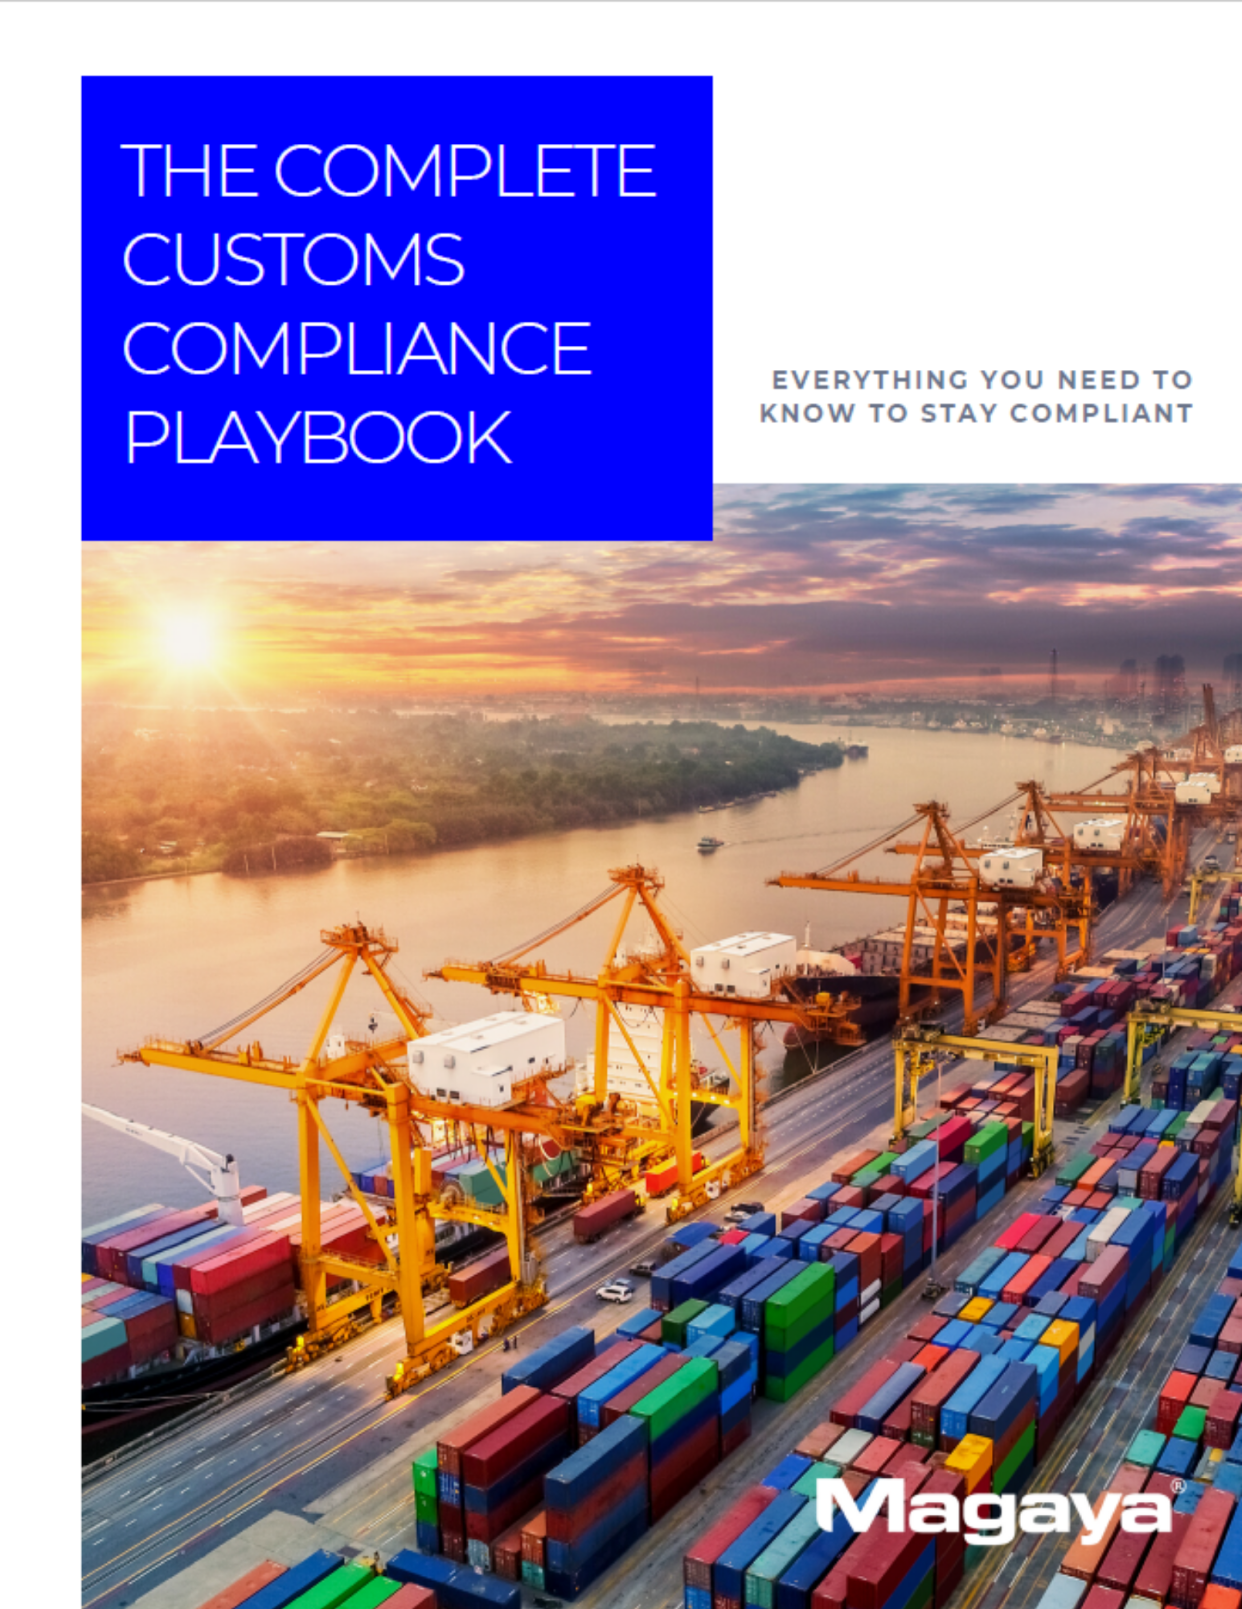 The Complete Customs Compliance Playbook